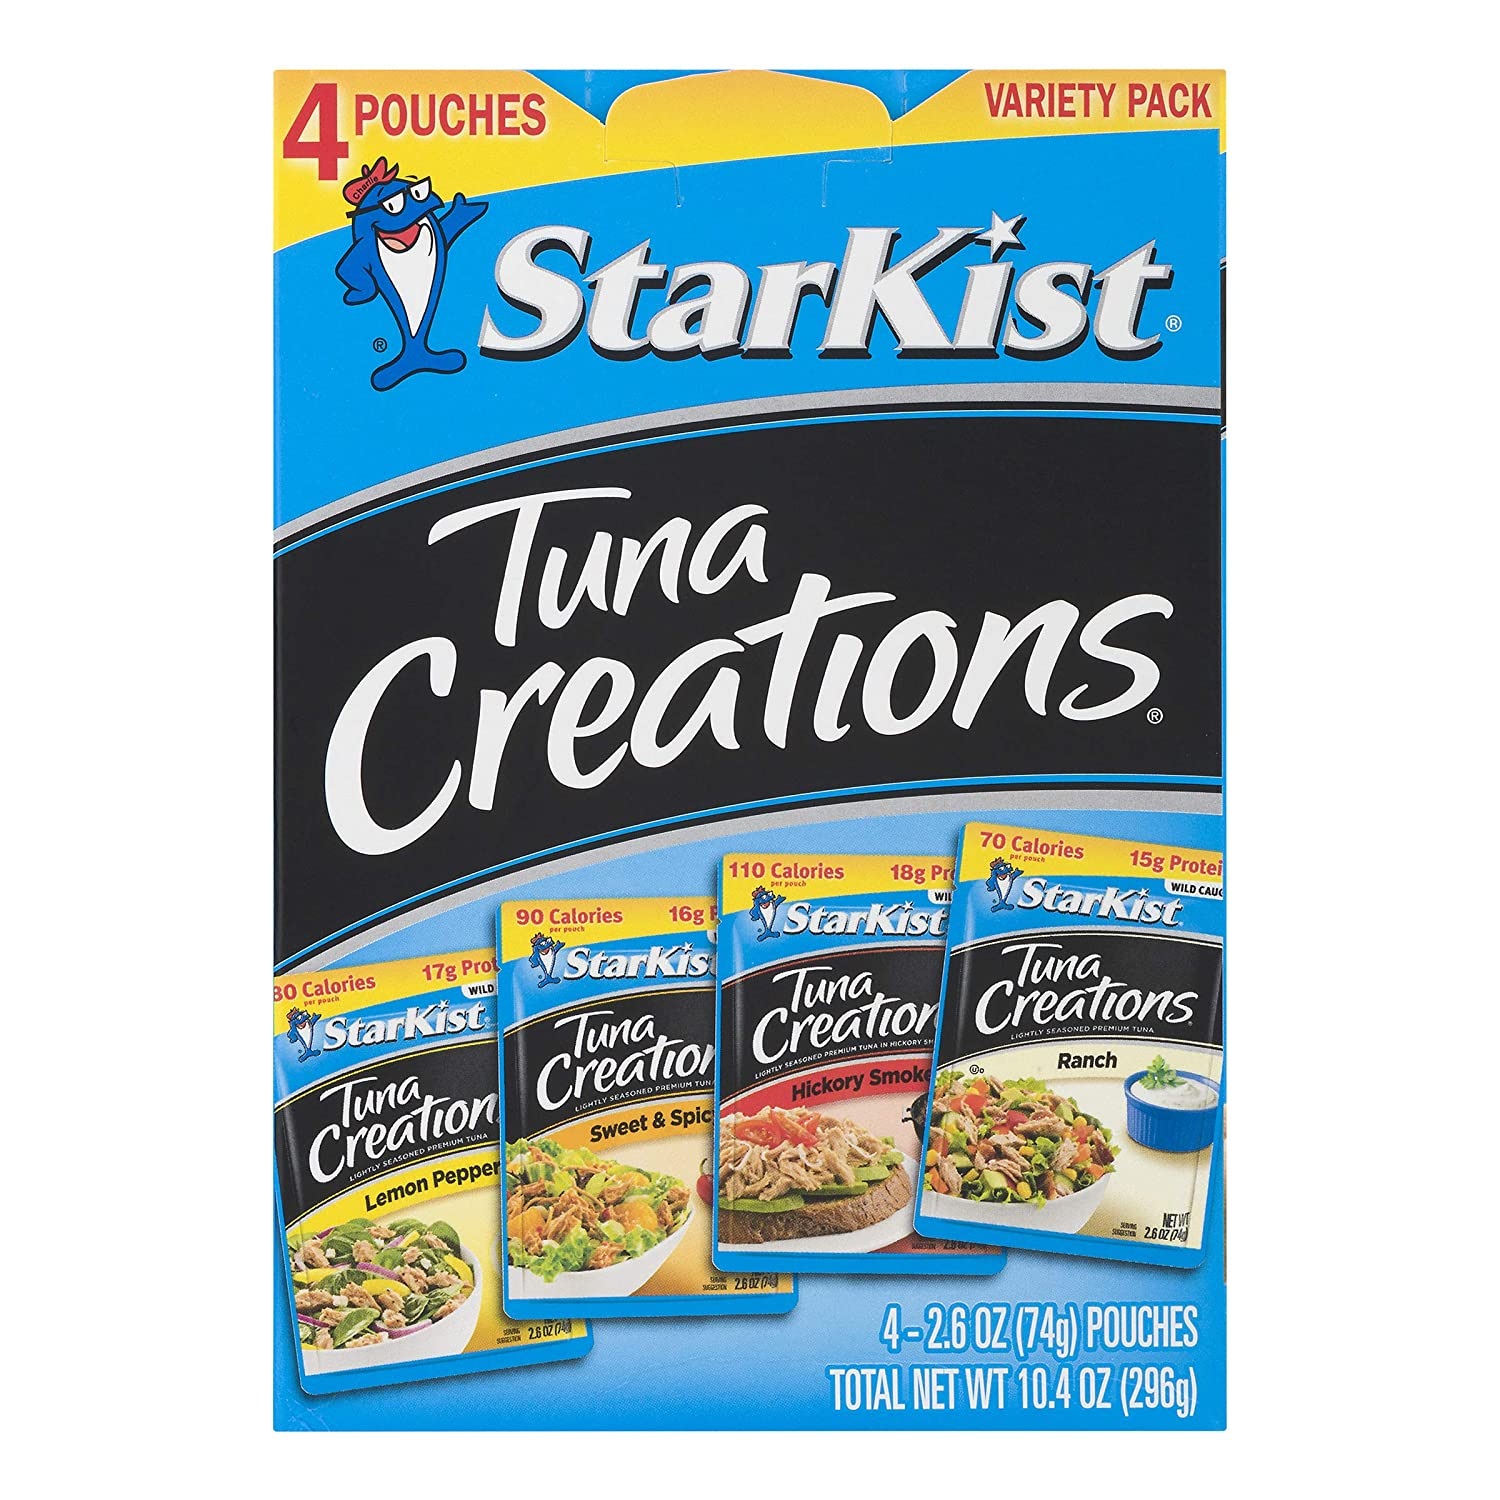 (4 Pouches) StarKist Tuna Creations Variety Pack, 2.6 oz (Multiple Flavors) $3.78